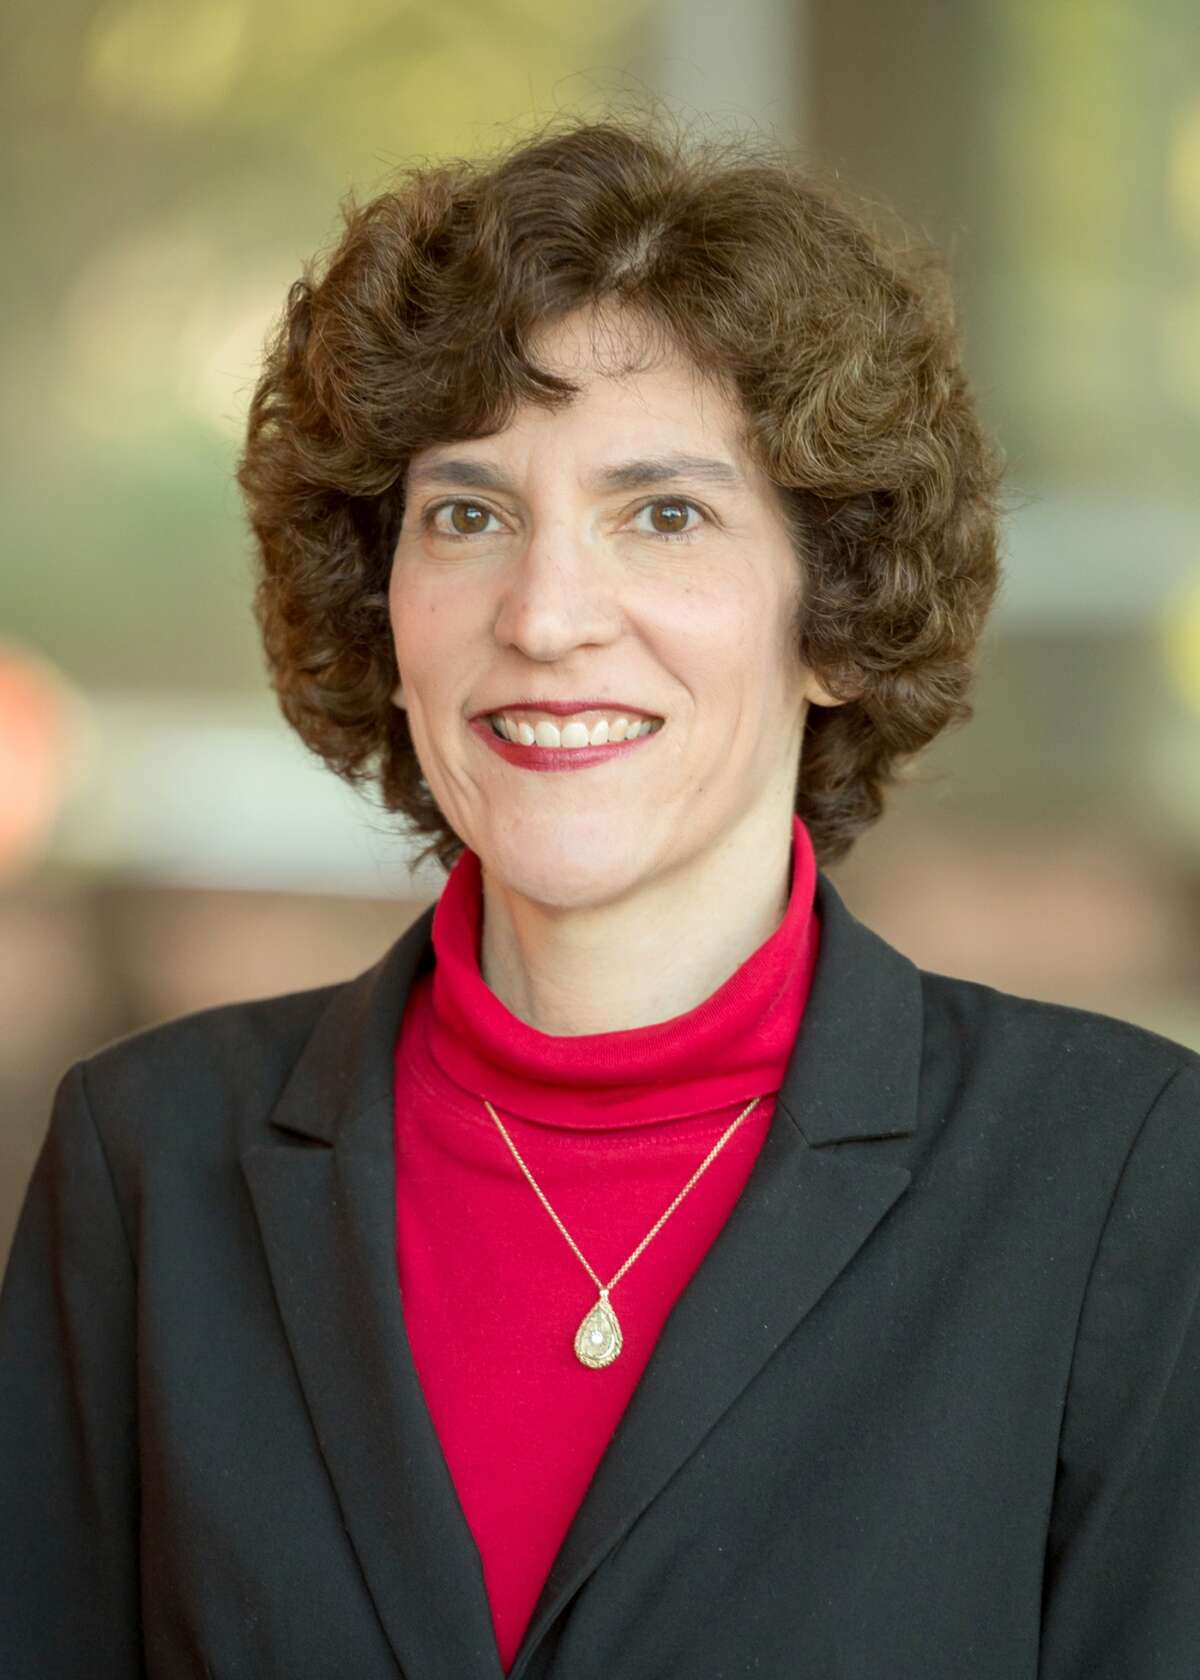 Intellectual property lawyer Sharon Israel is joining Shook, Hardy & Bacon